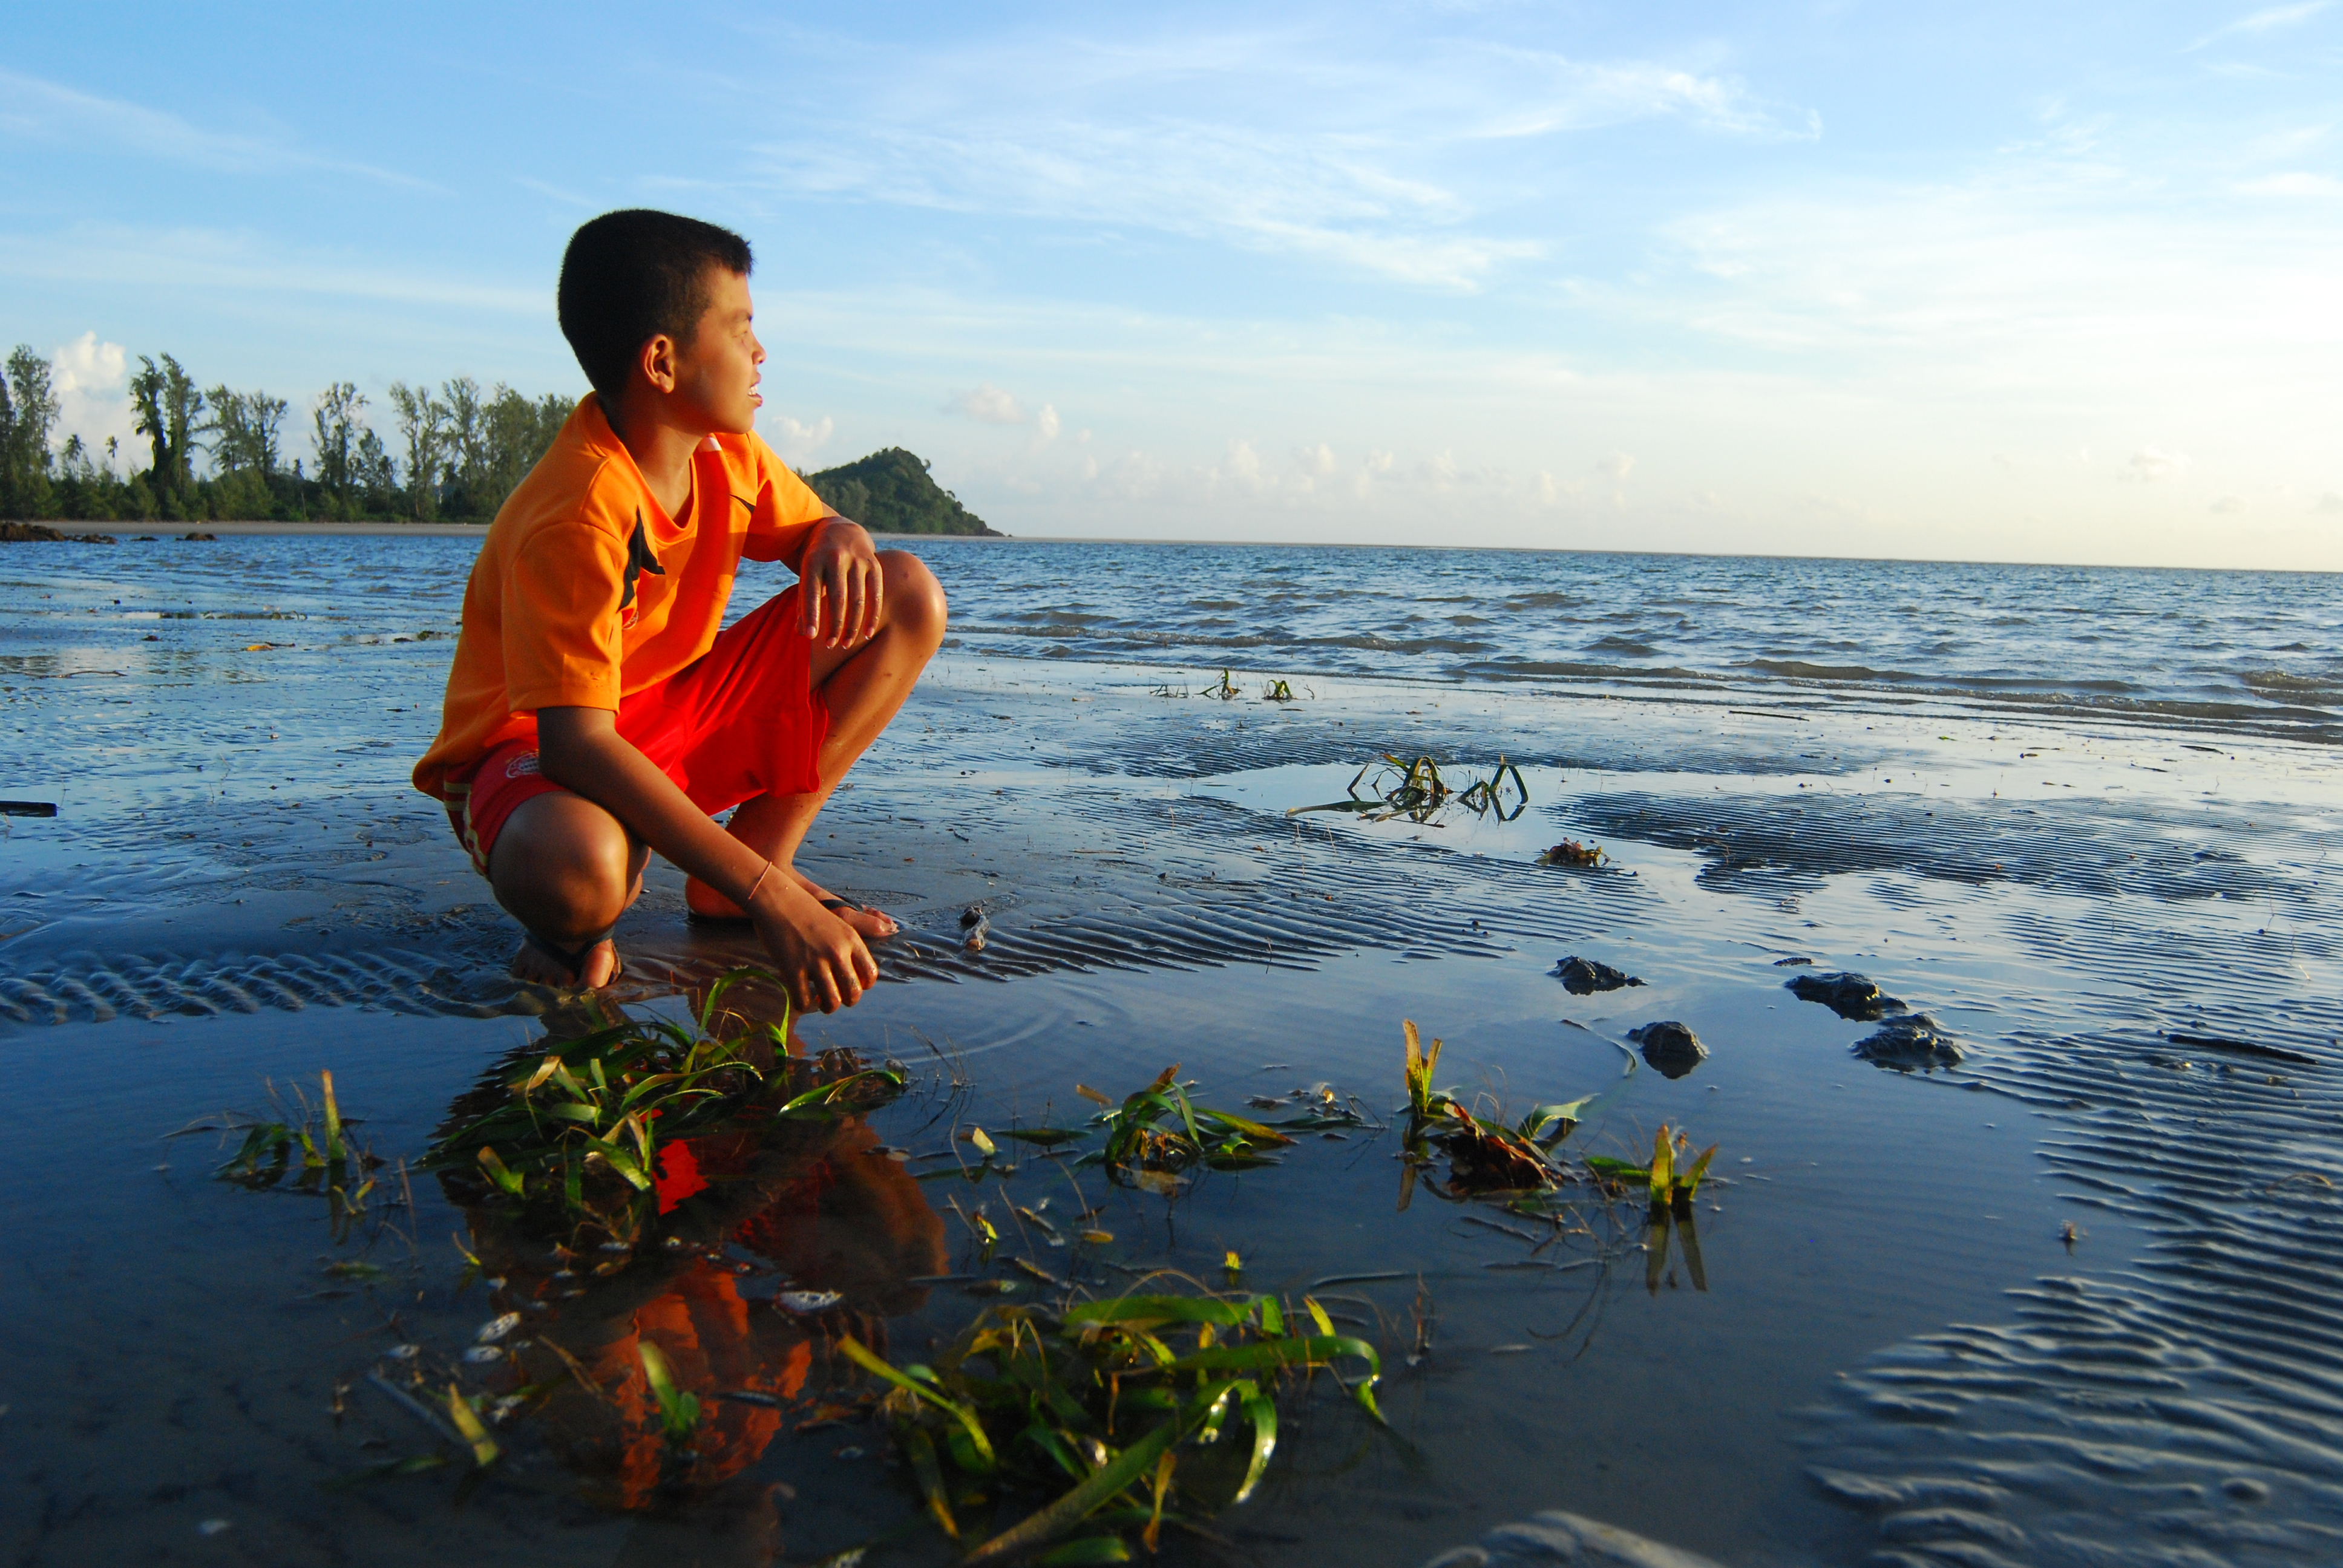 Building coastal resilience to reduce climate change impact in Baan Tha Klong, Thailand